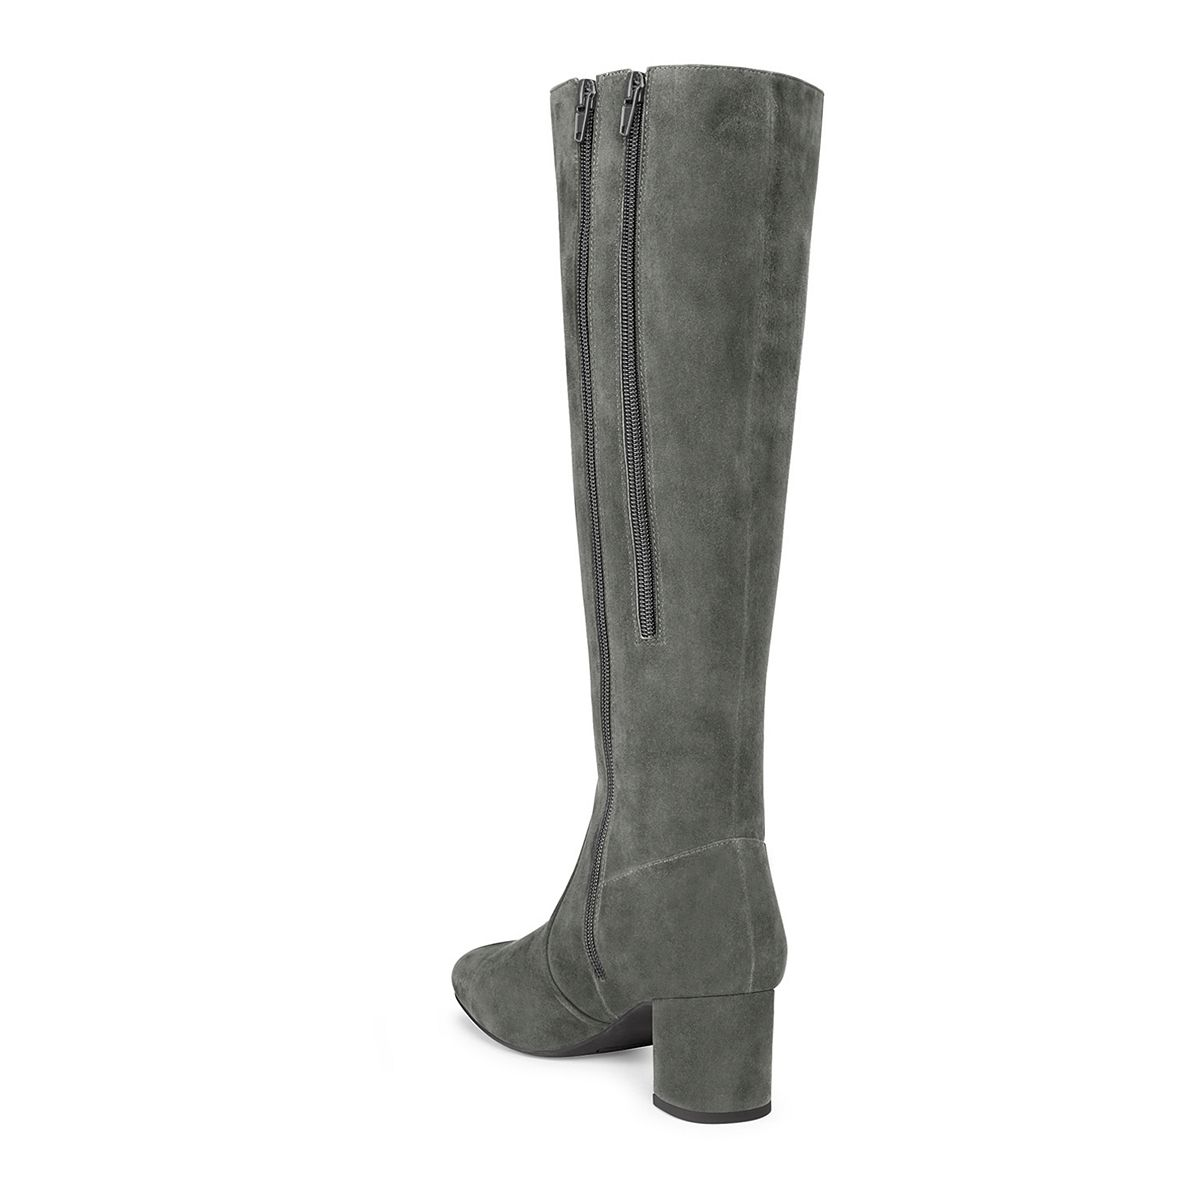 Aerosoles Cannonball Women's Tall Boots Gray Suede CIEAT